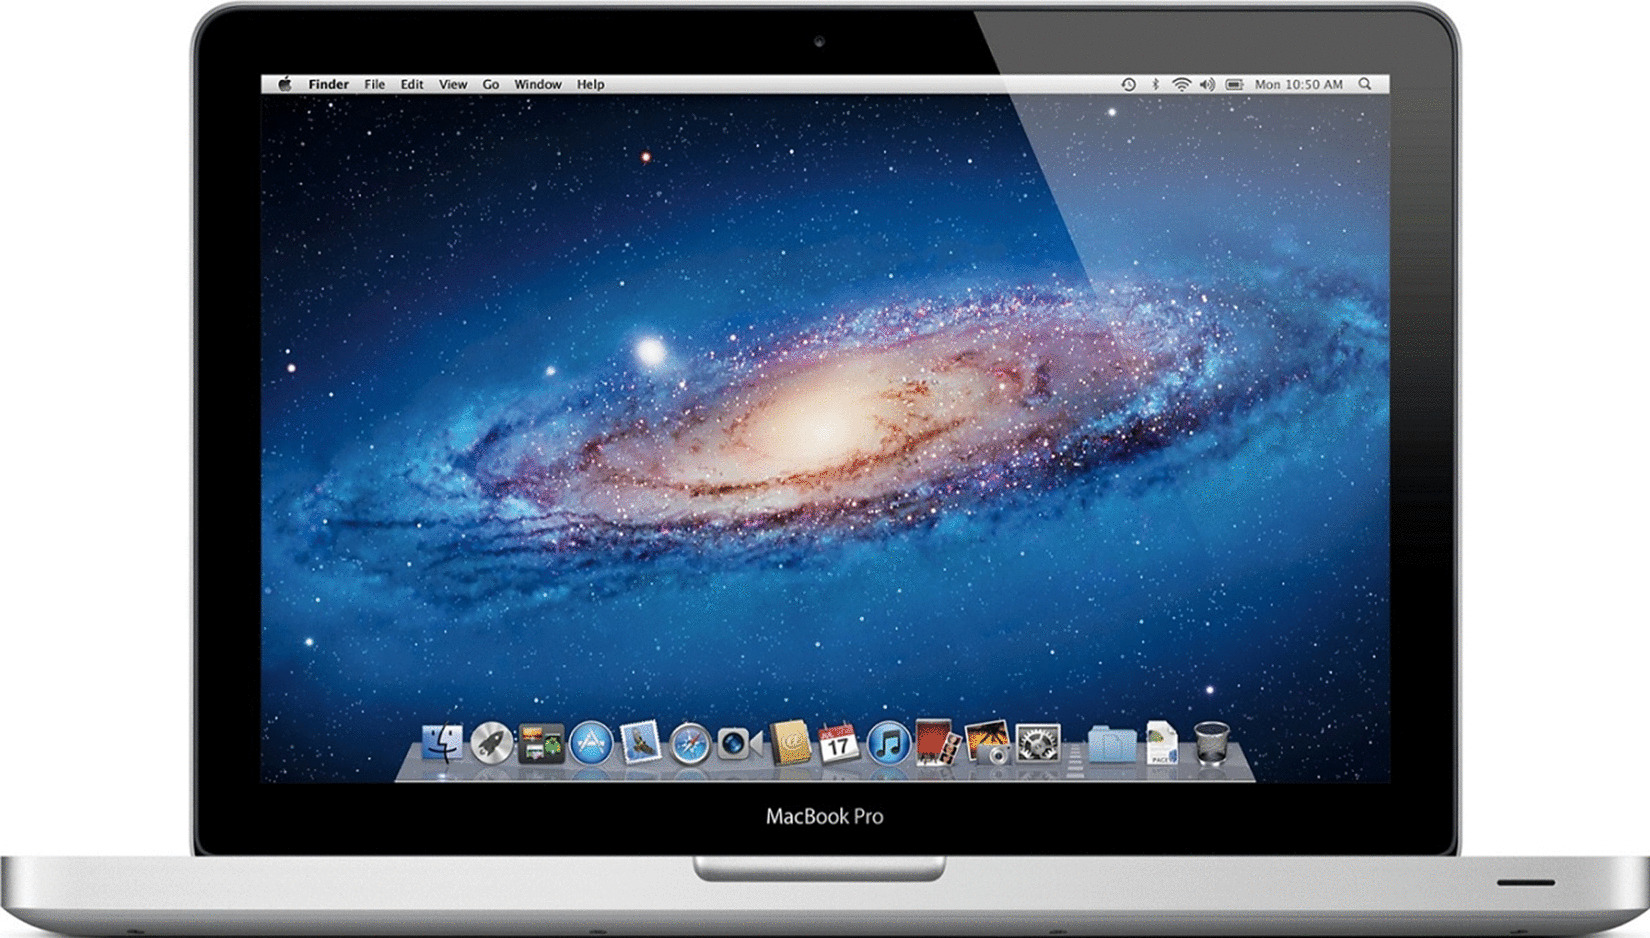 Apple MacBook Pro CTO 13.3 (Glossy) 2.7 GHz Intel Core i7 4 GB RAM 256 GB SSD [Early 2011]